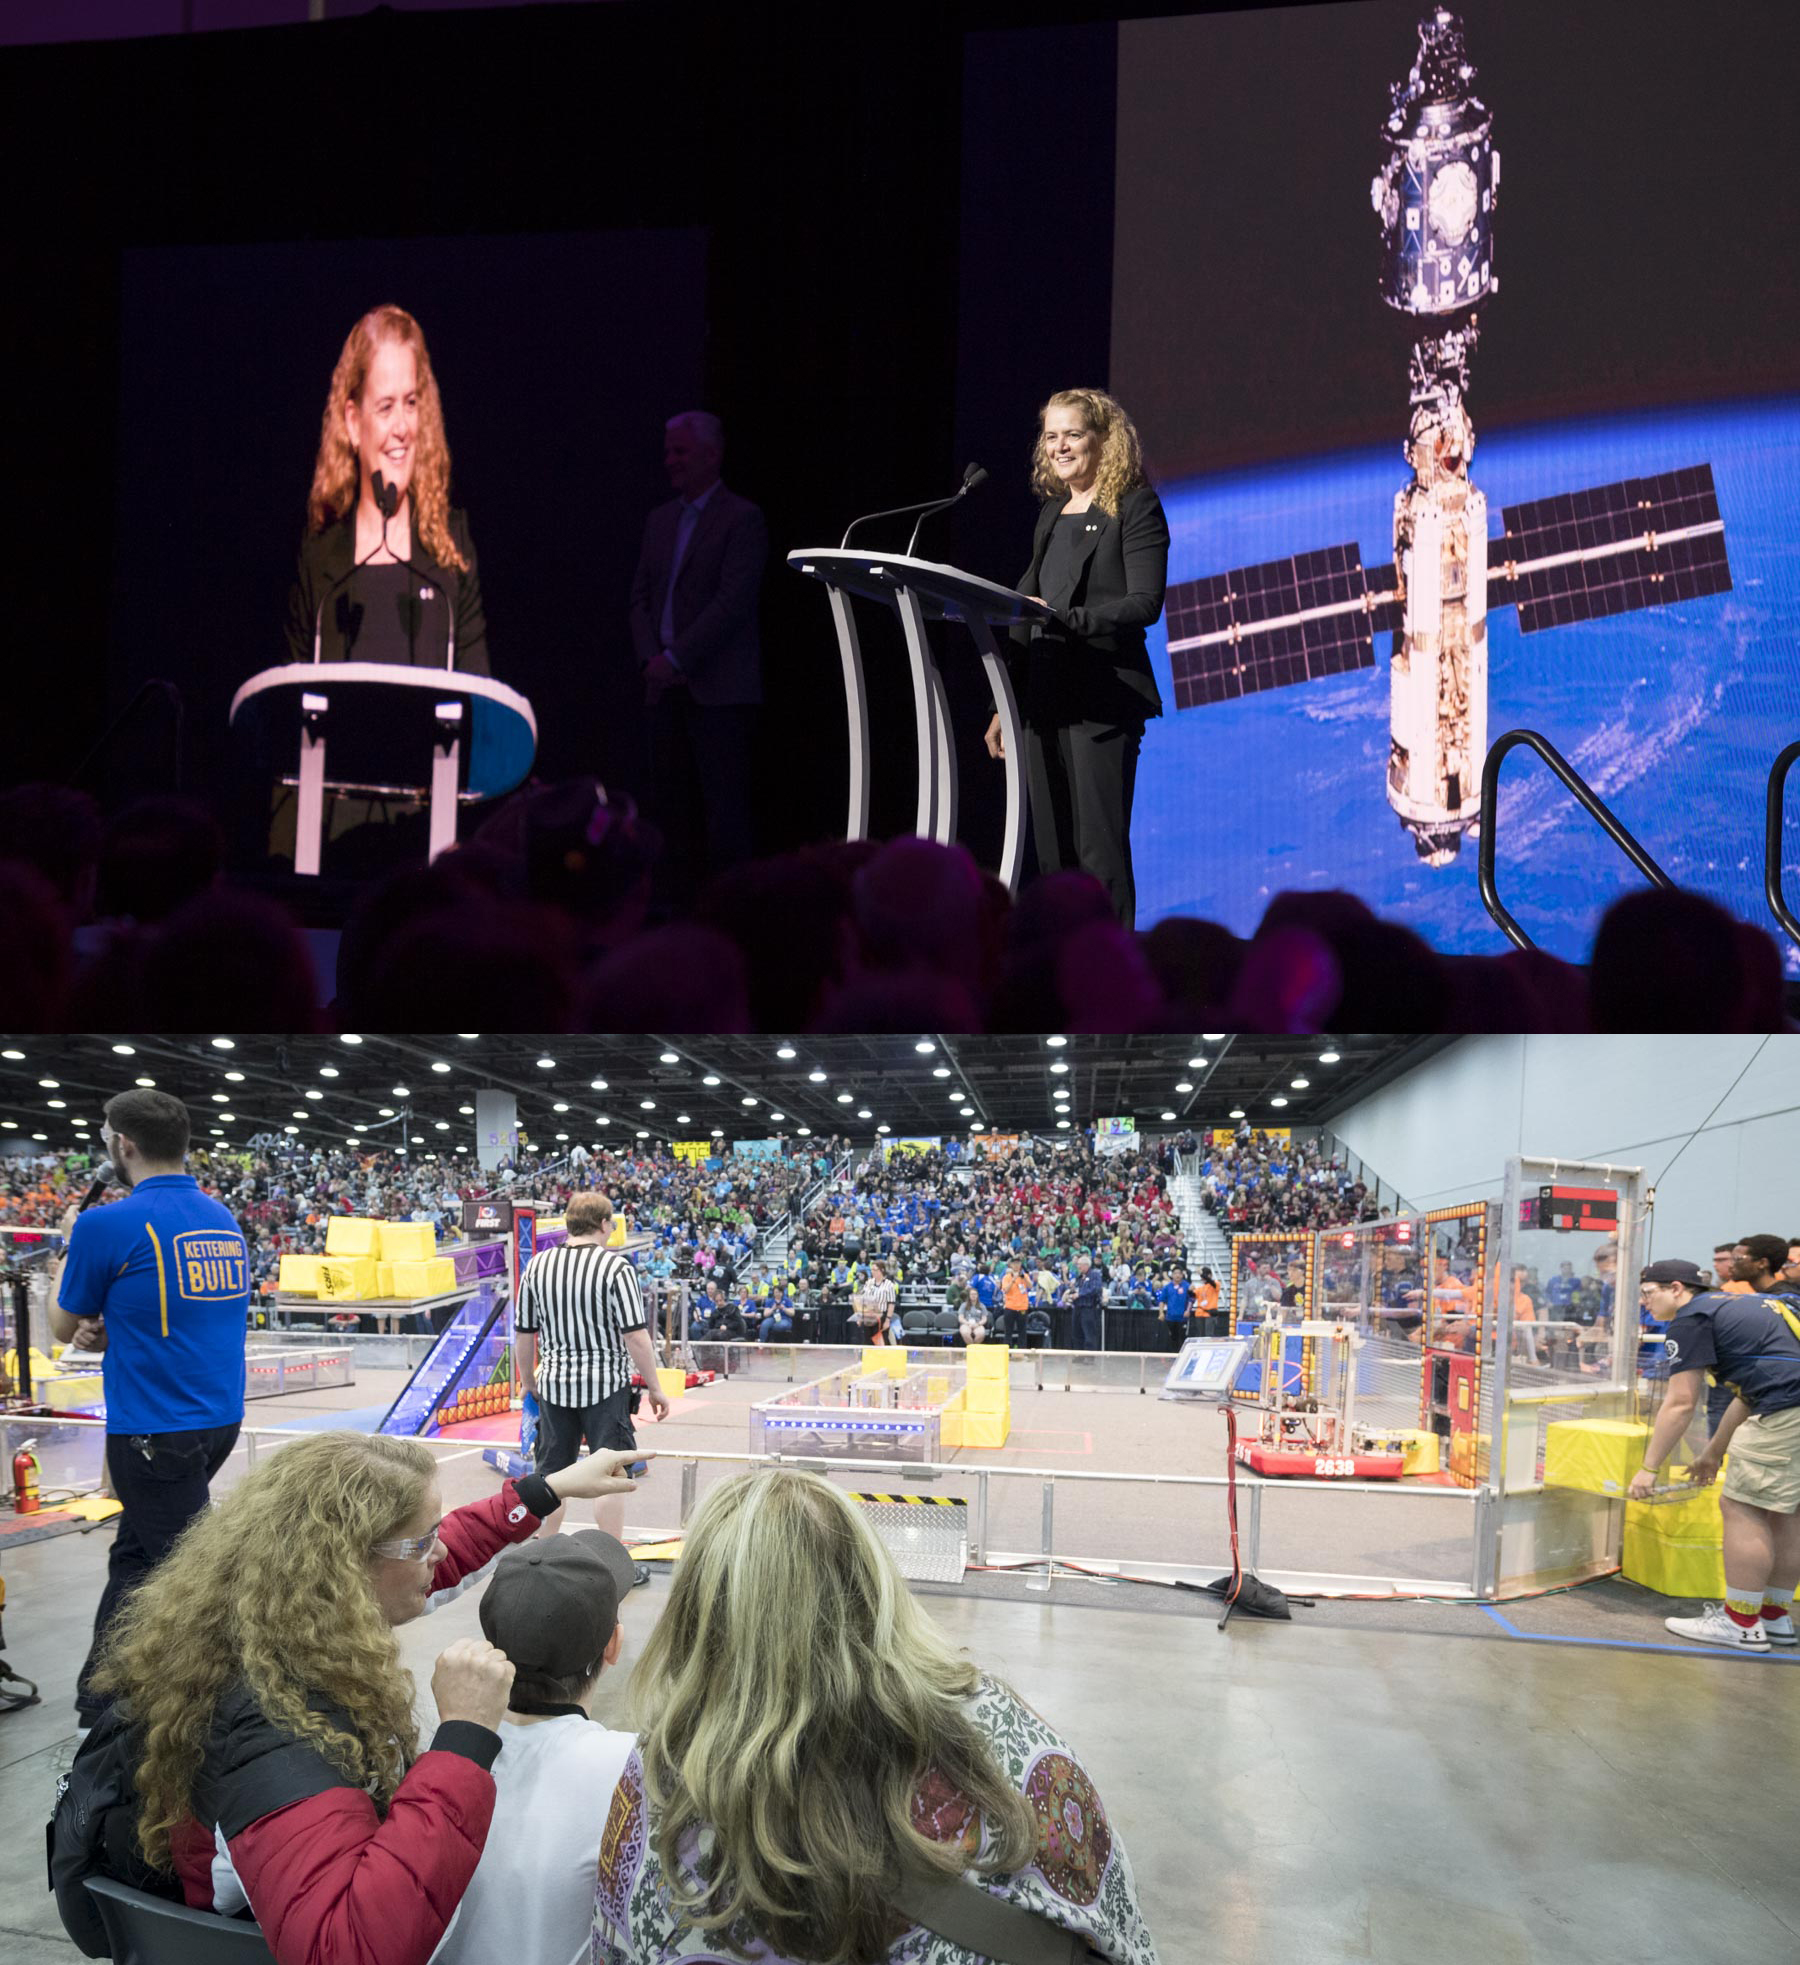 The FIRST Championship took place in Detroit and Canada was well represented in this competition where youth competed head to head with robotic creations. These different competitions strive to build interest in science, technology, engineering and mathematics (STEM) through the construction of robots that must complete complex challenges.